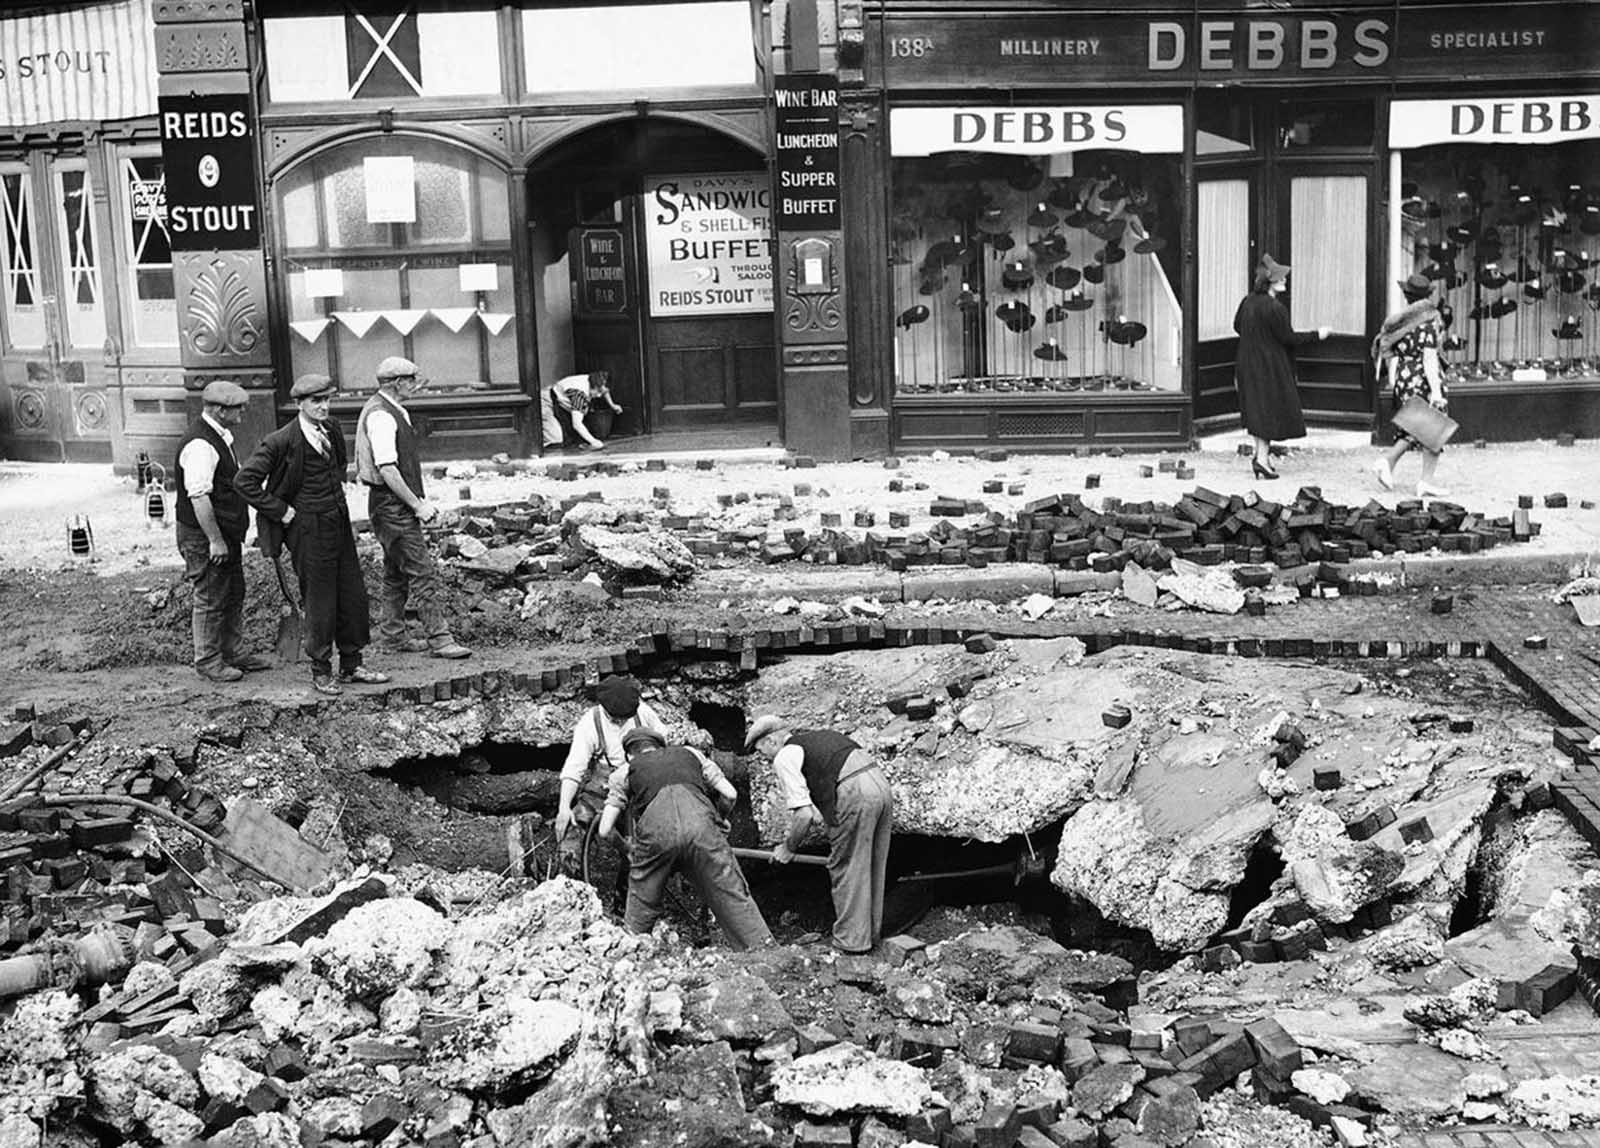 A huge crater was made in a road at Elephant & Castle, London on September 7, 1940, after a night raid on London.